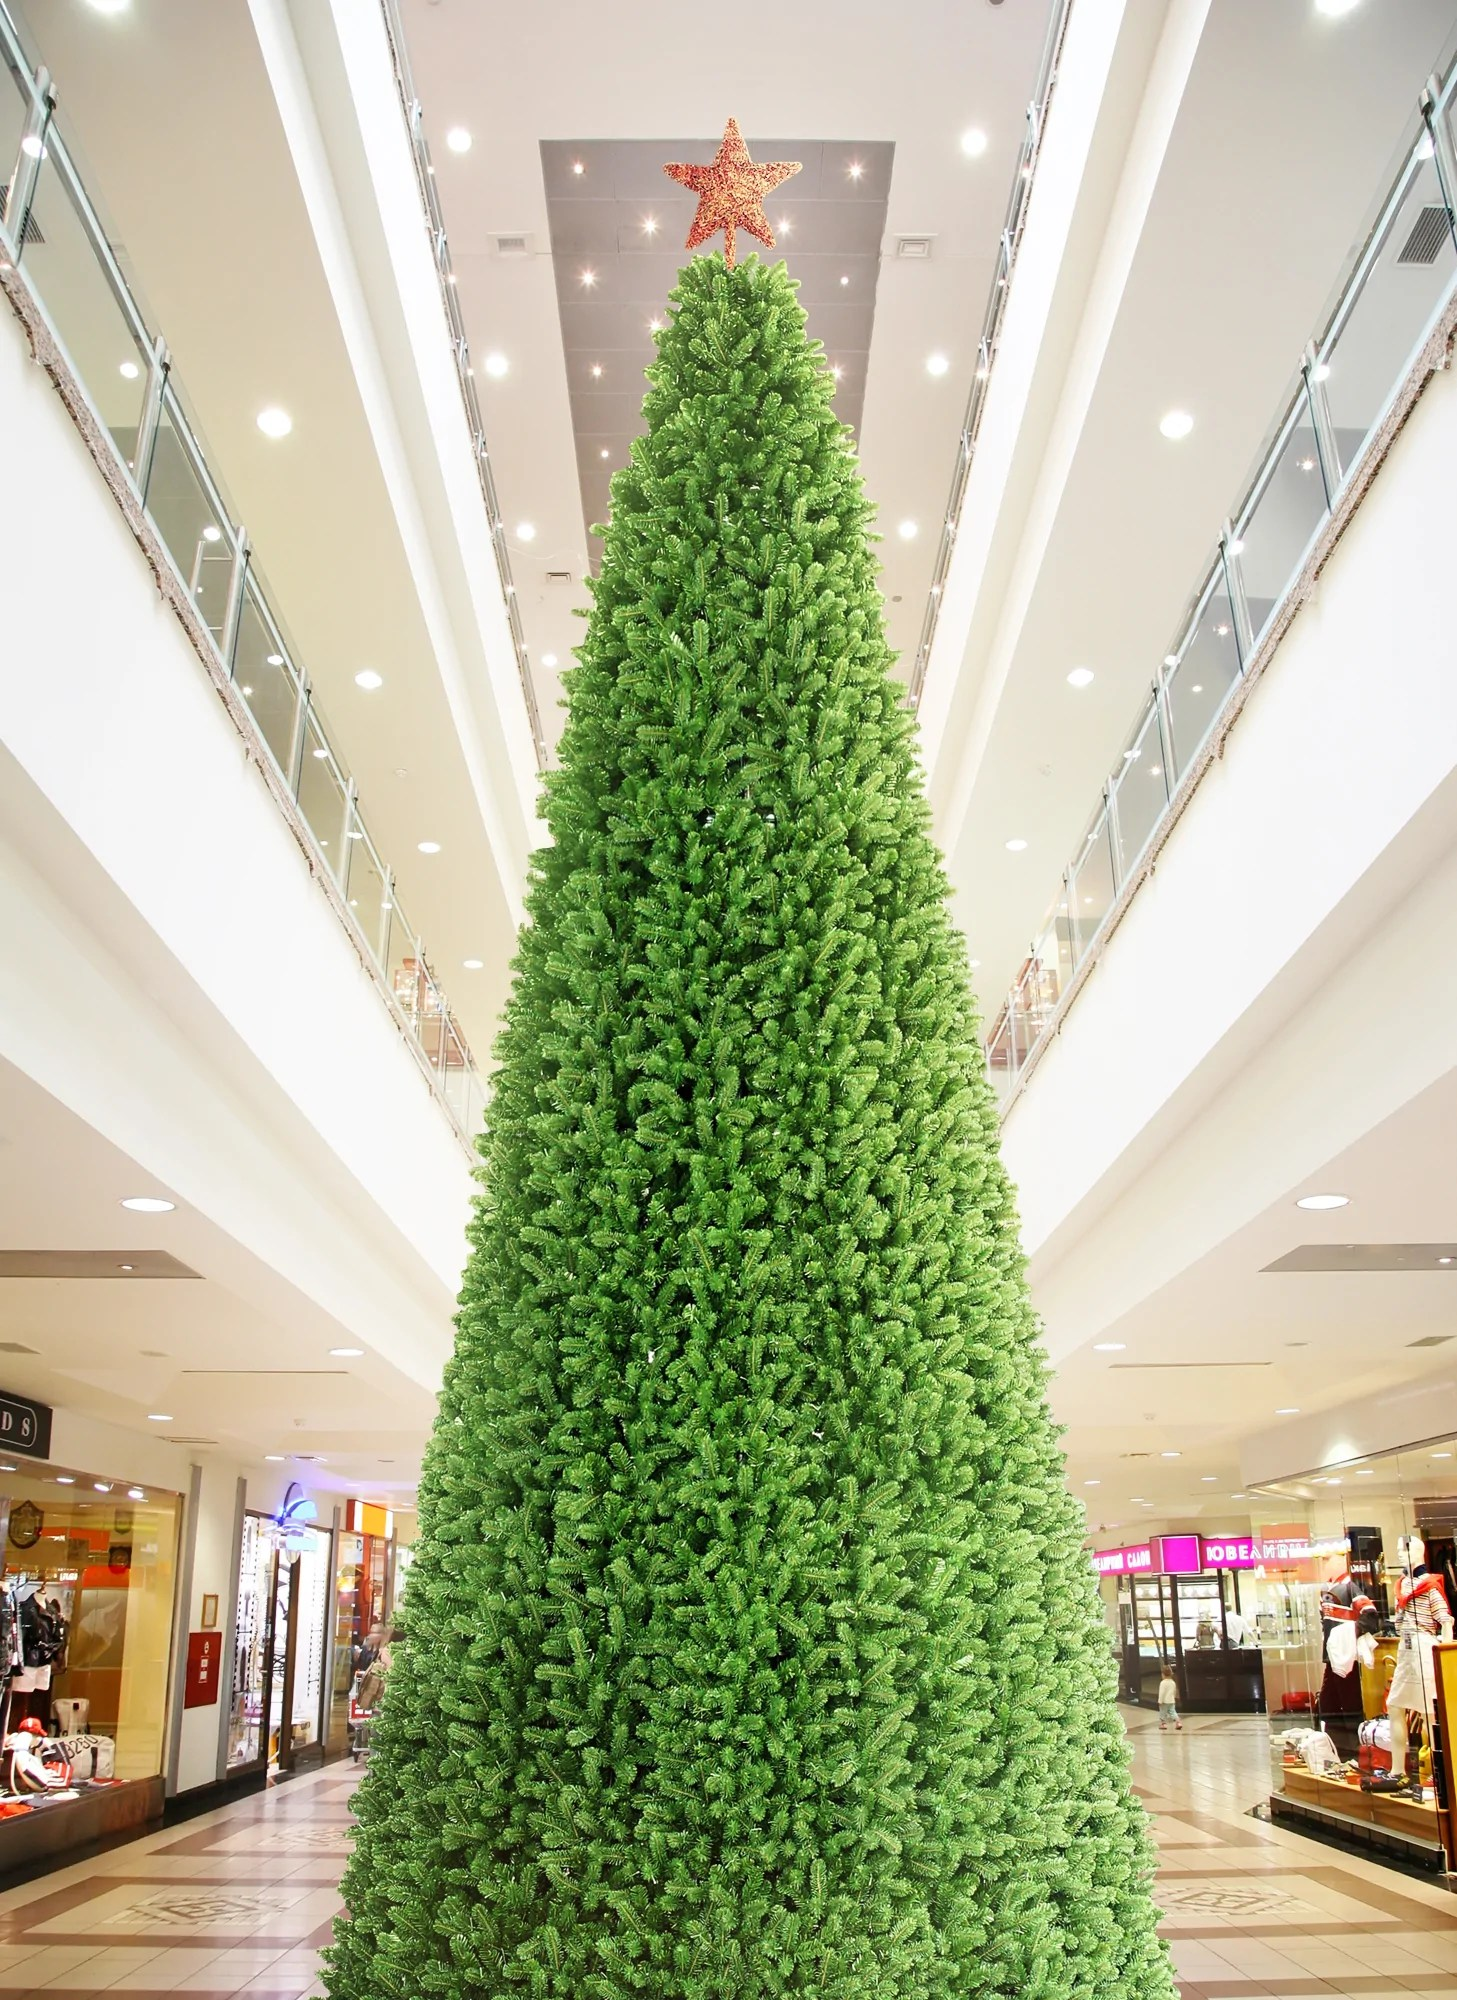 Artificial Christmas Kmart Foot 9 Tree